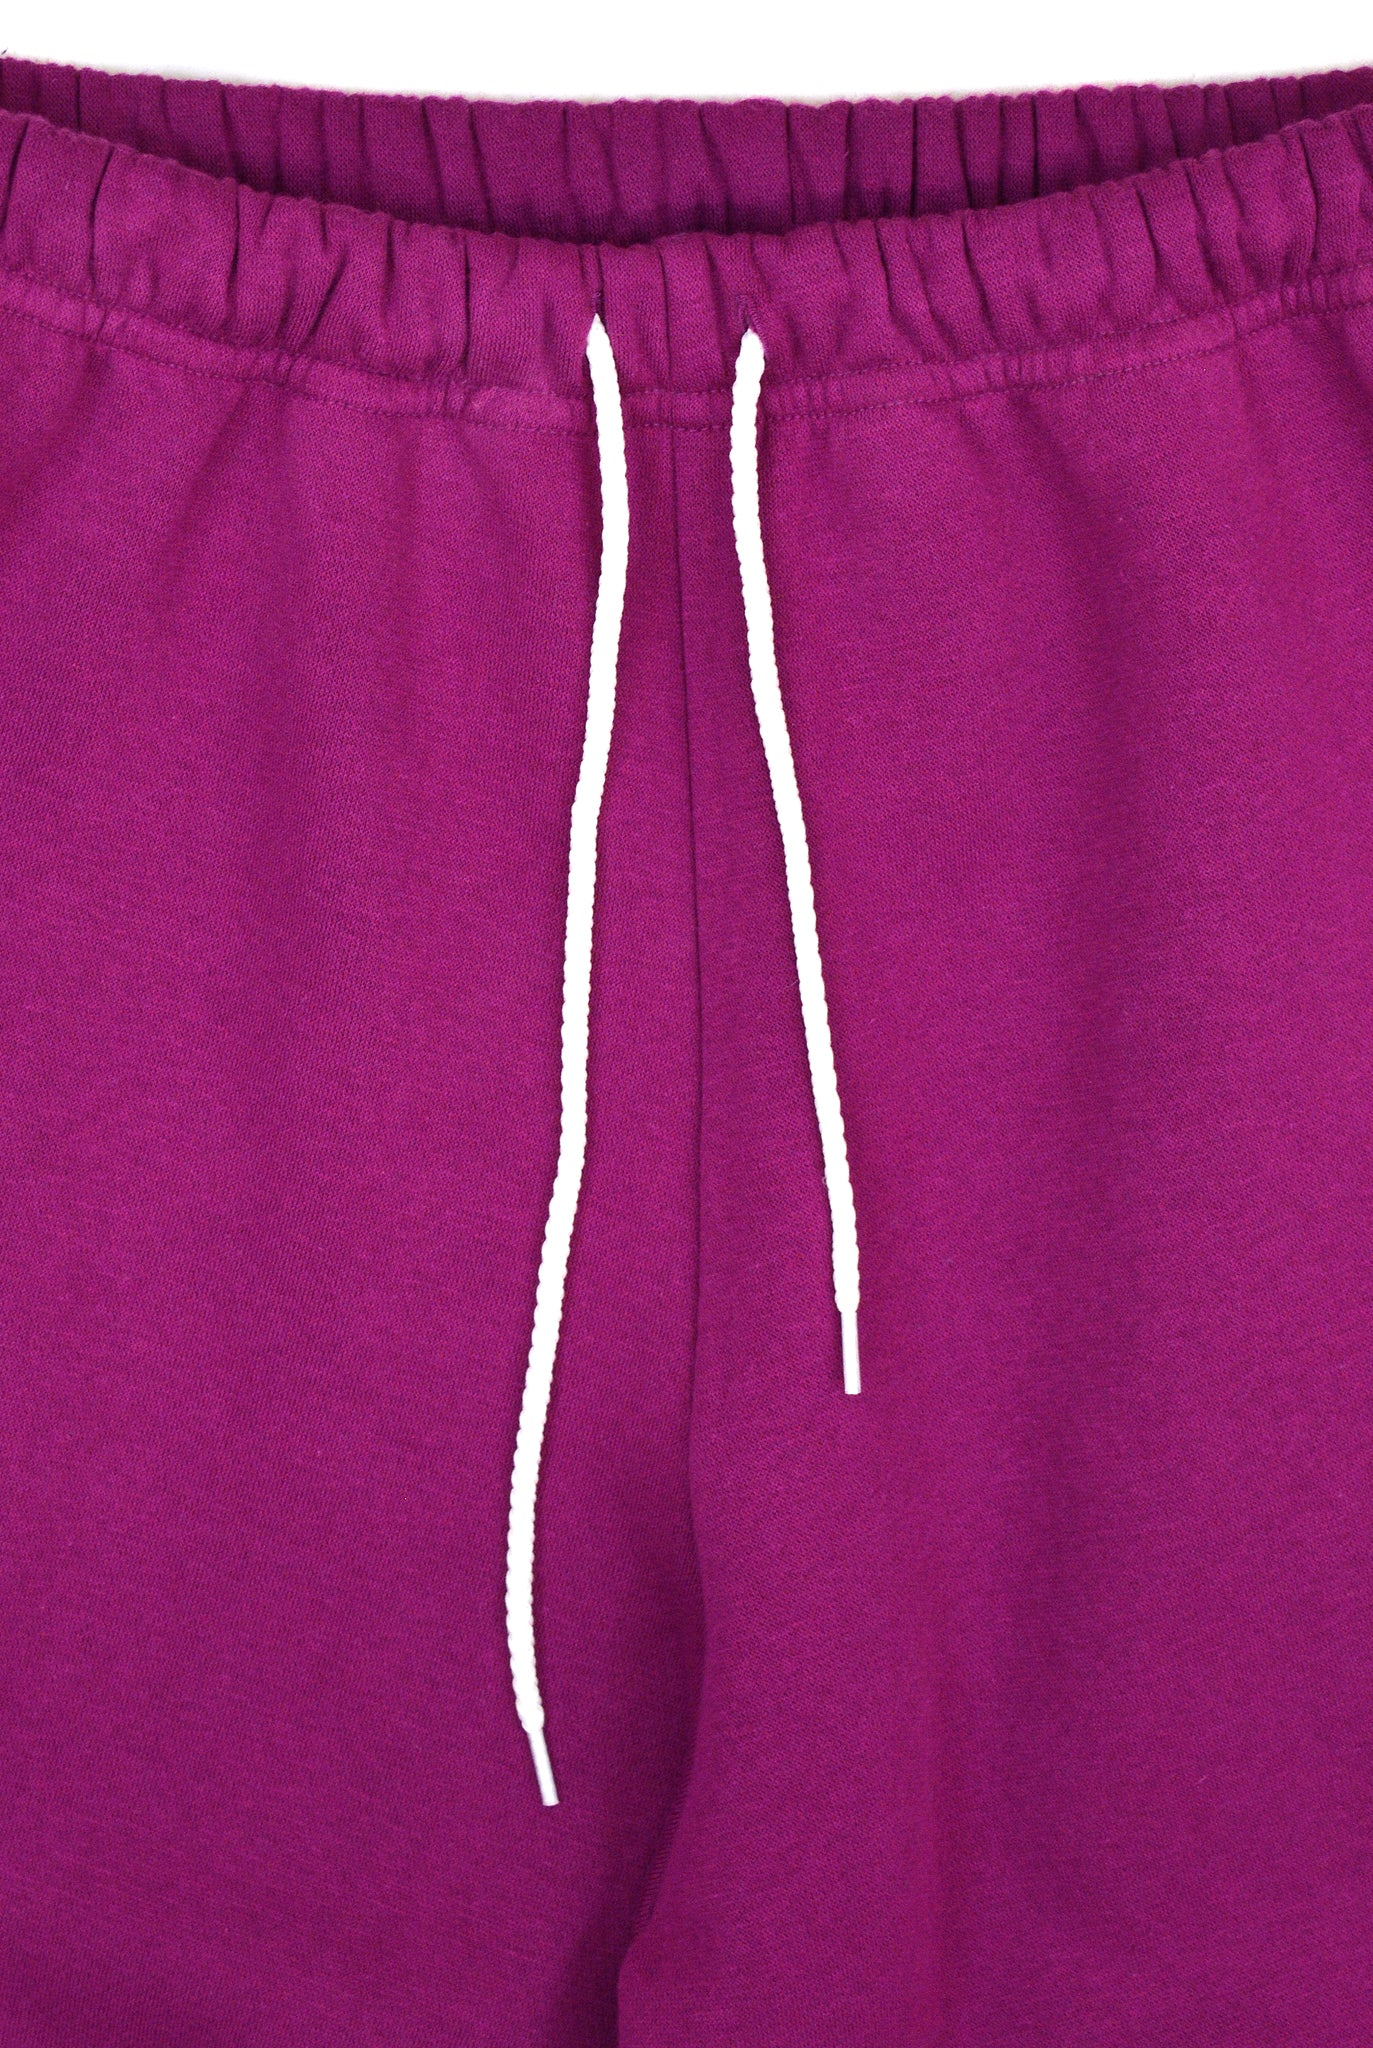 SOOP SOOP Unisex Sweatpants, Berry